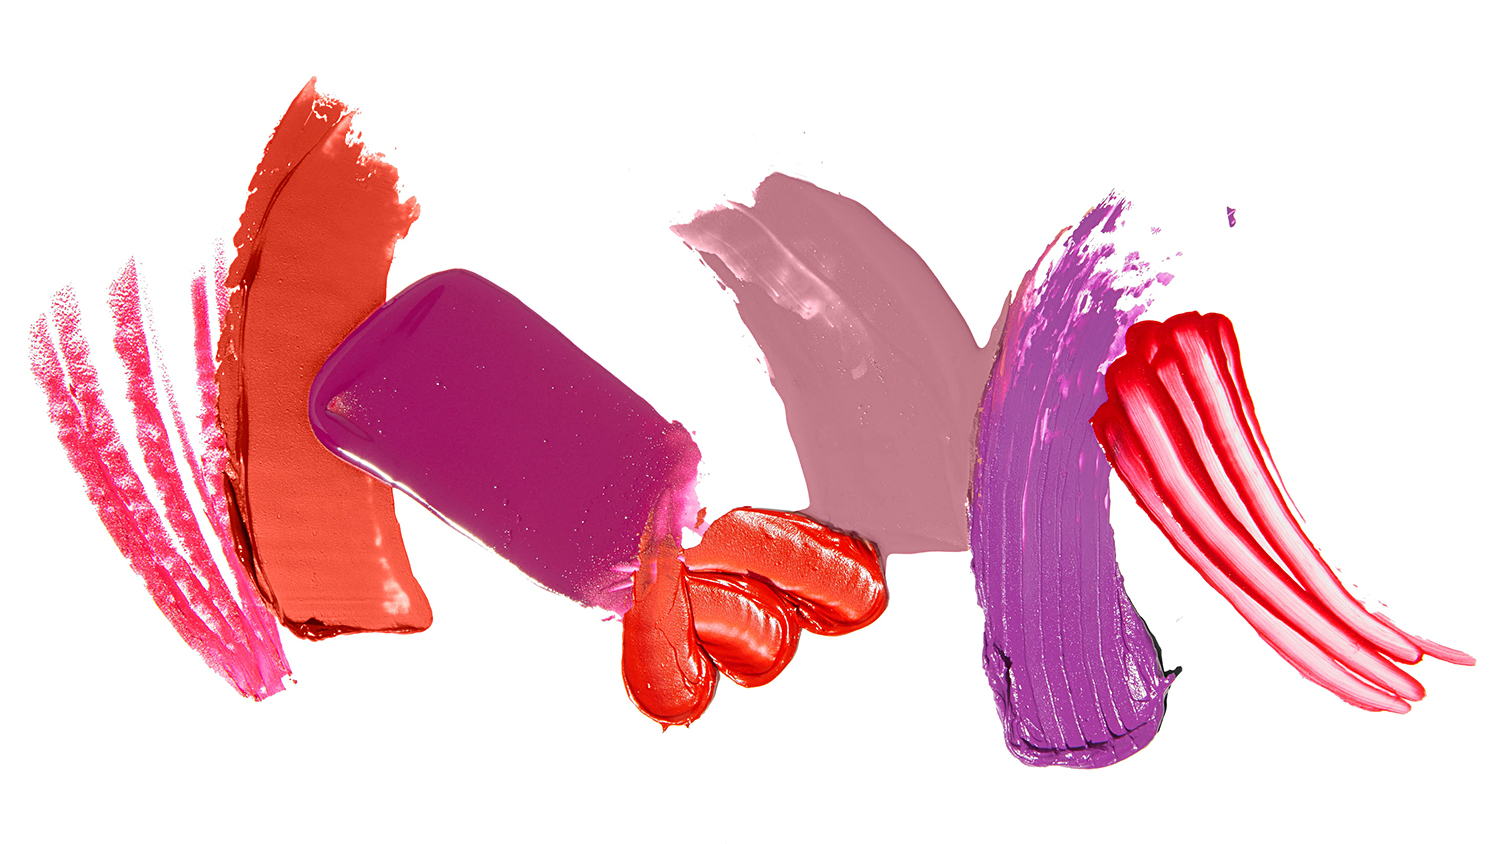 Lip color product smears